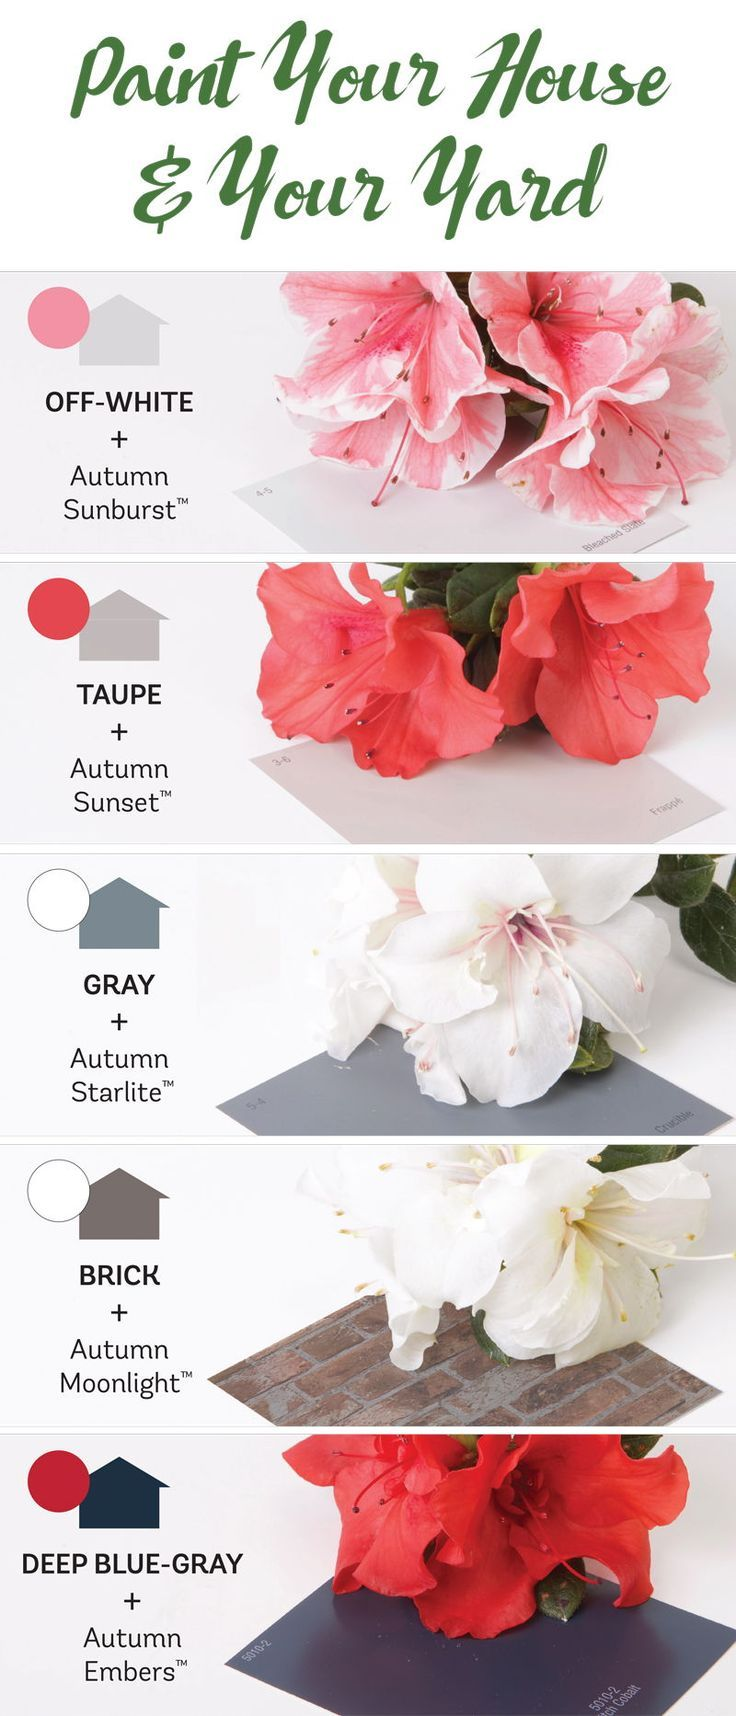 Top 5 Home Colors And Encores That Look Great With Them House Colors Azalea Color Garden Inspiration